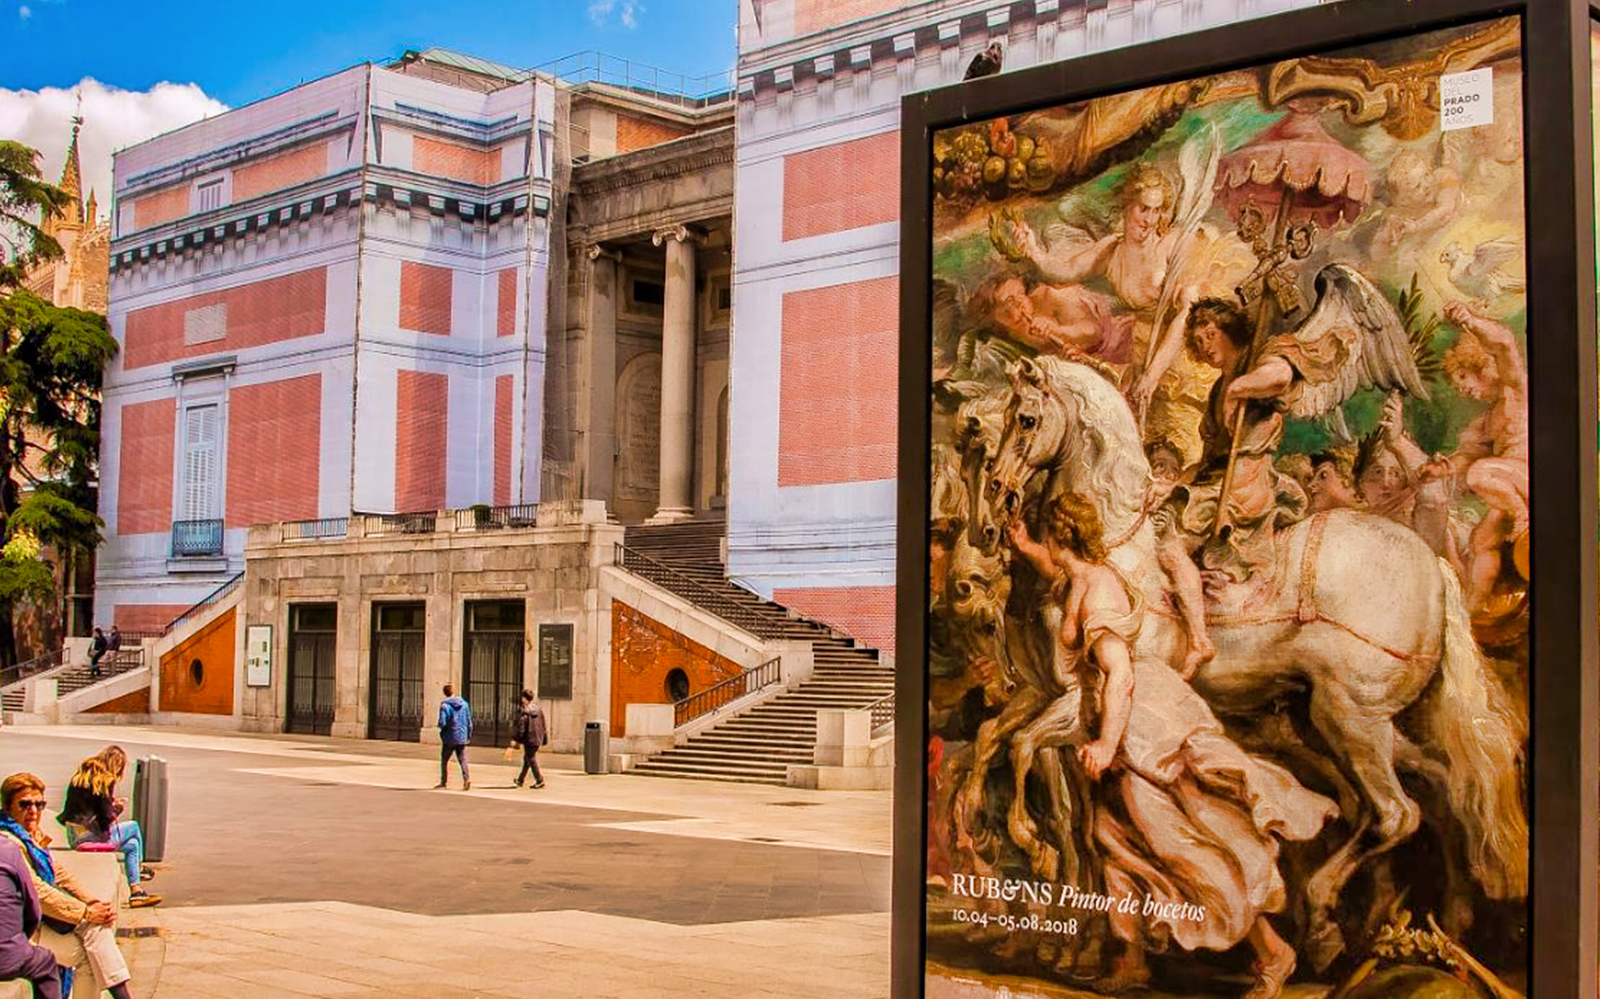 A5eb167a a48e 47af b730 a3393645d806 10409 madrid prado museum guided tour 02